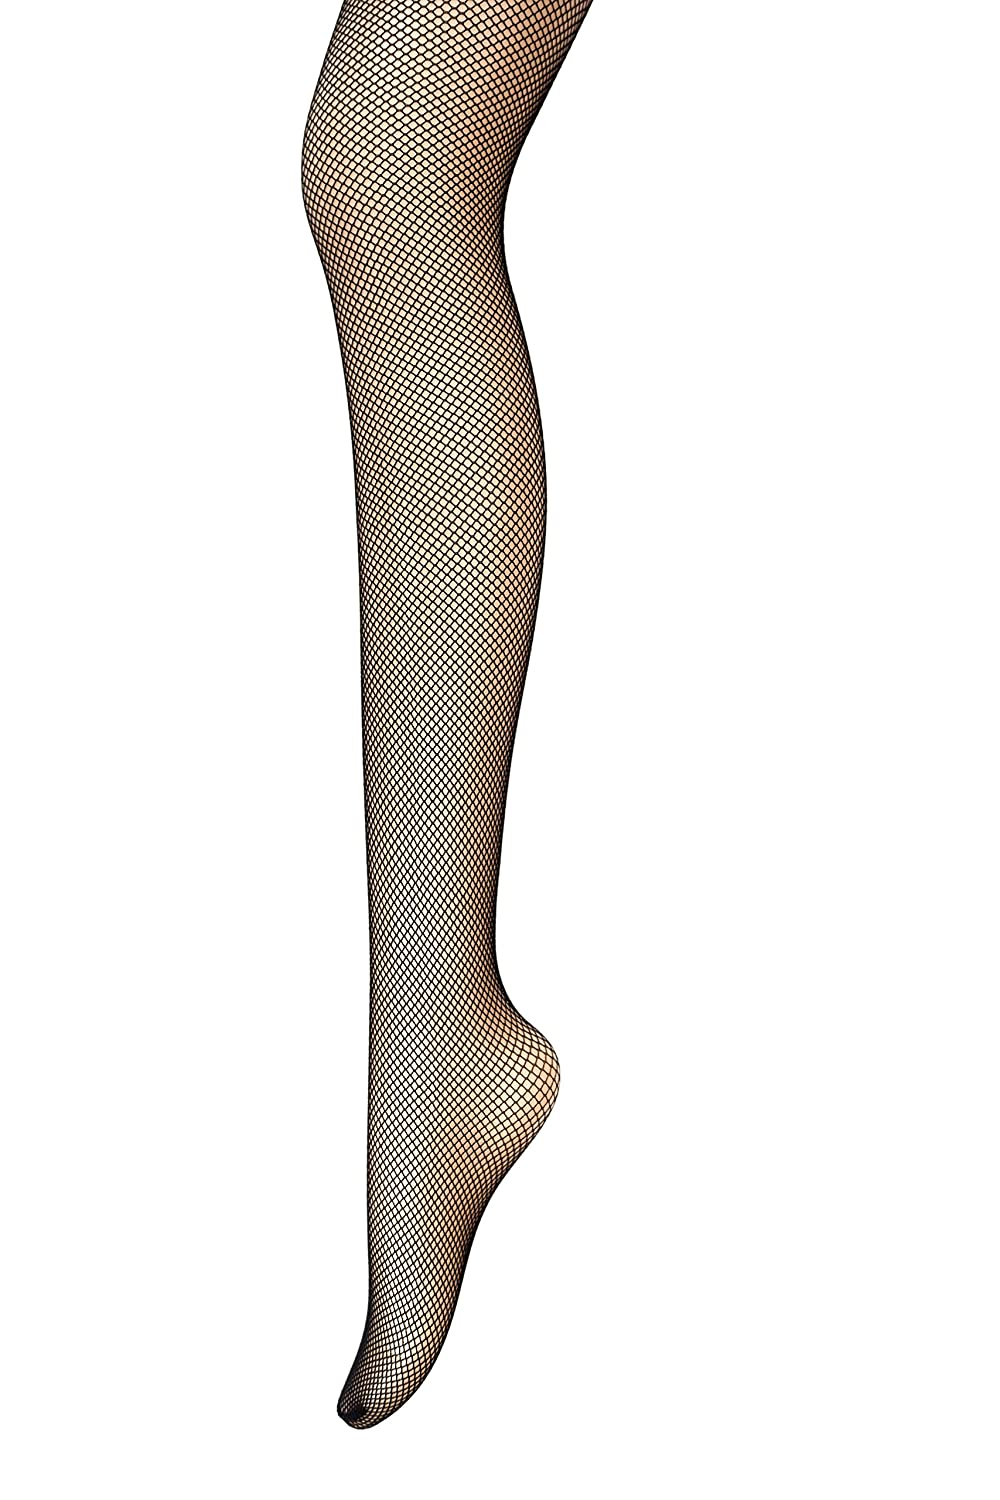 408b3d9aacbbf4 Amazon.com: Nude Rhinestone Fishnet Tights Nylon Stockings Pattern Tights  Pantyhose Plus Size For Women 6 Pack: Clothing